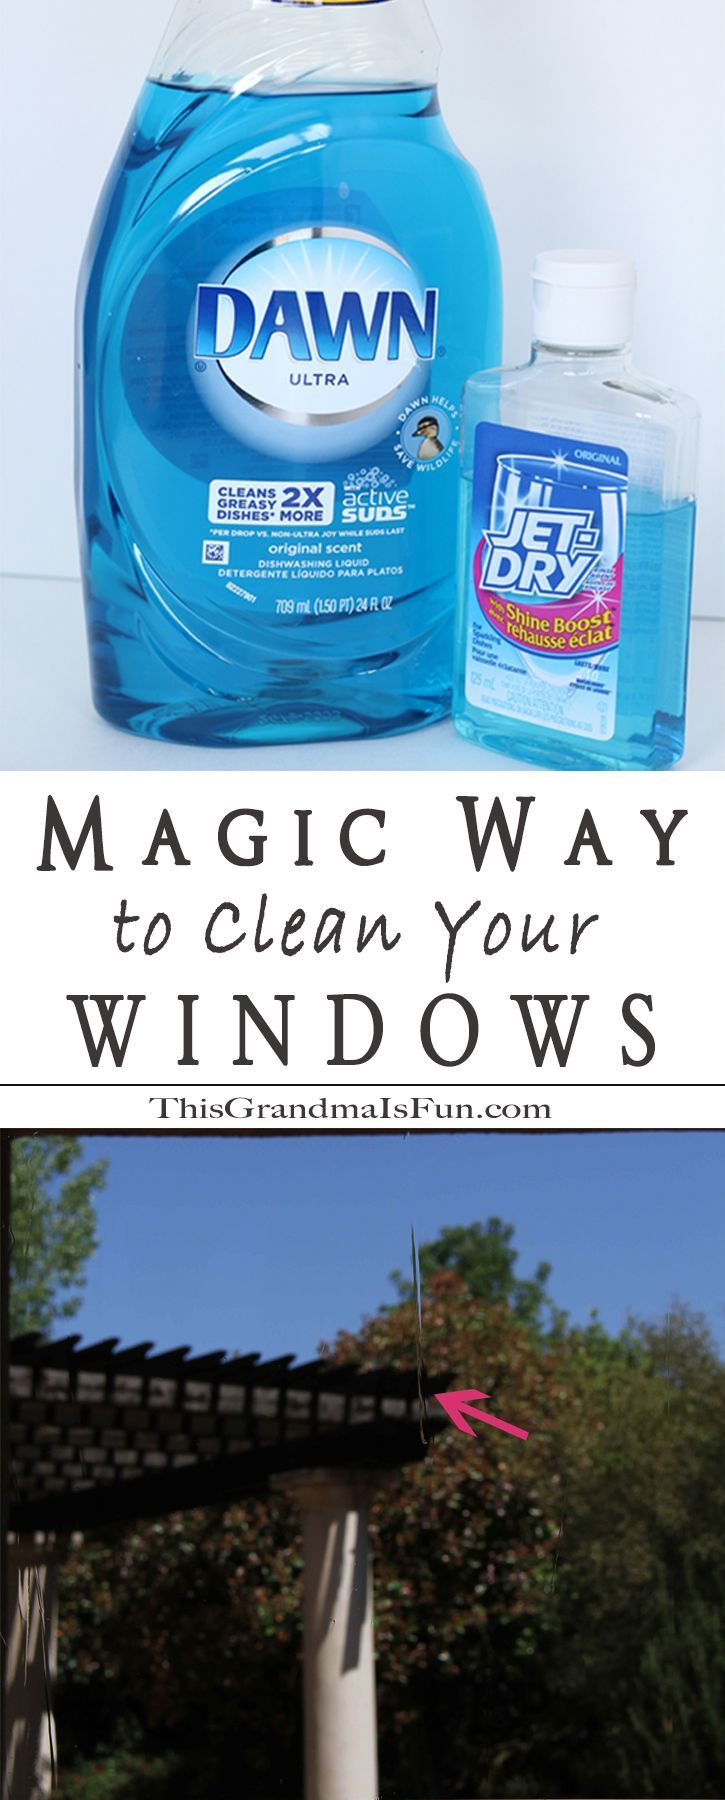 %name The magic way to clean your windows, does such a thing exist in the real world? ...